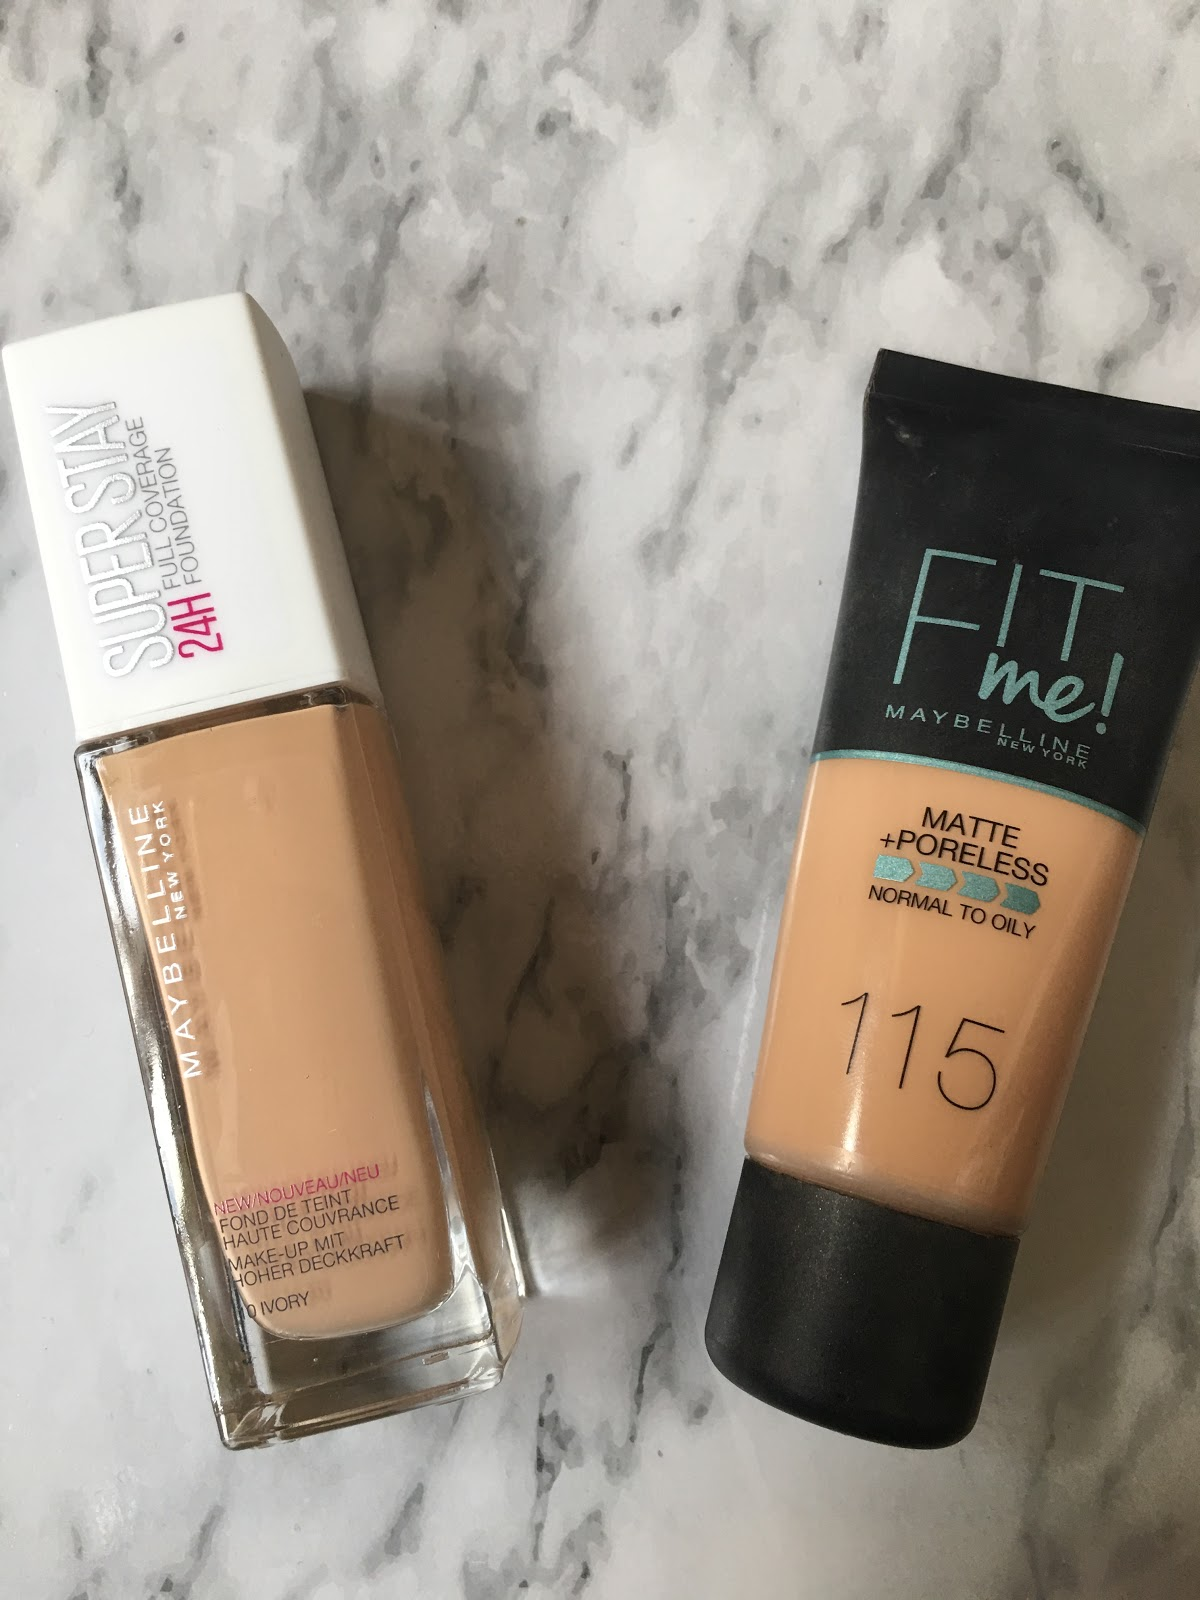 Maybelline 24 Hour Superstay Foundation Vs Fit Me Juelook Airyrooms Matte Poreless 30ml Its A Good For The Price And I Say Simular To Rimmels Lasting Finish As Thats What It Reminds Of